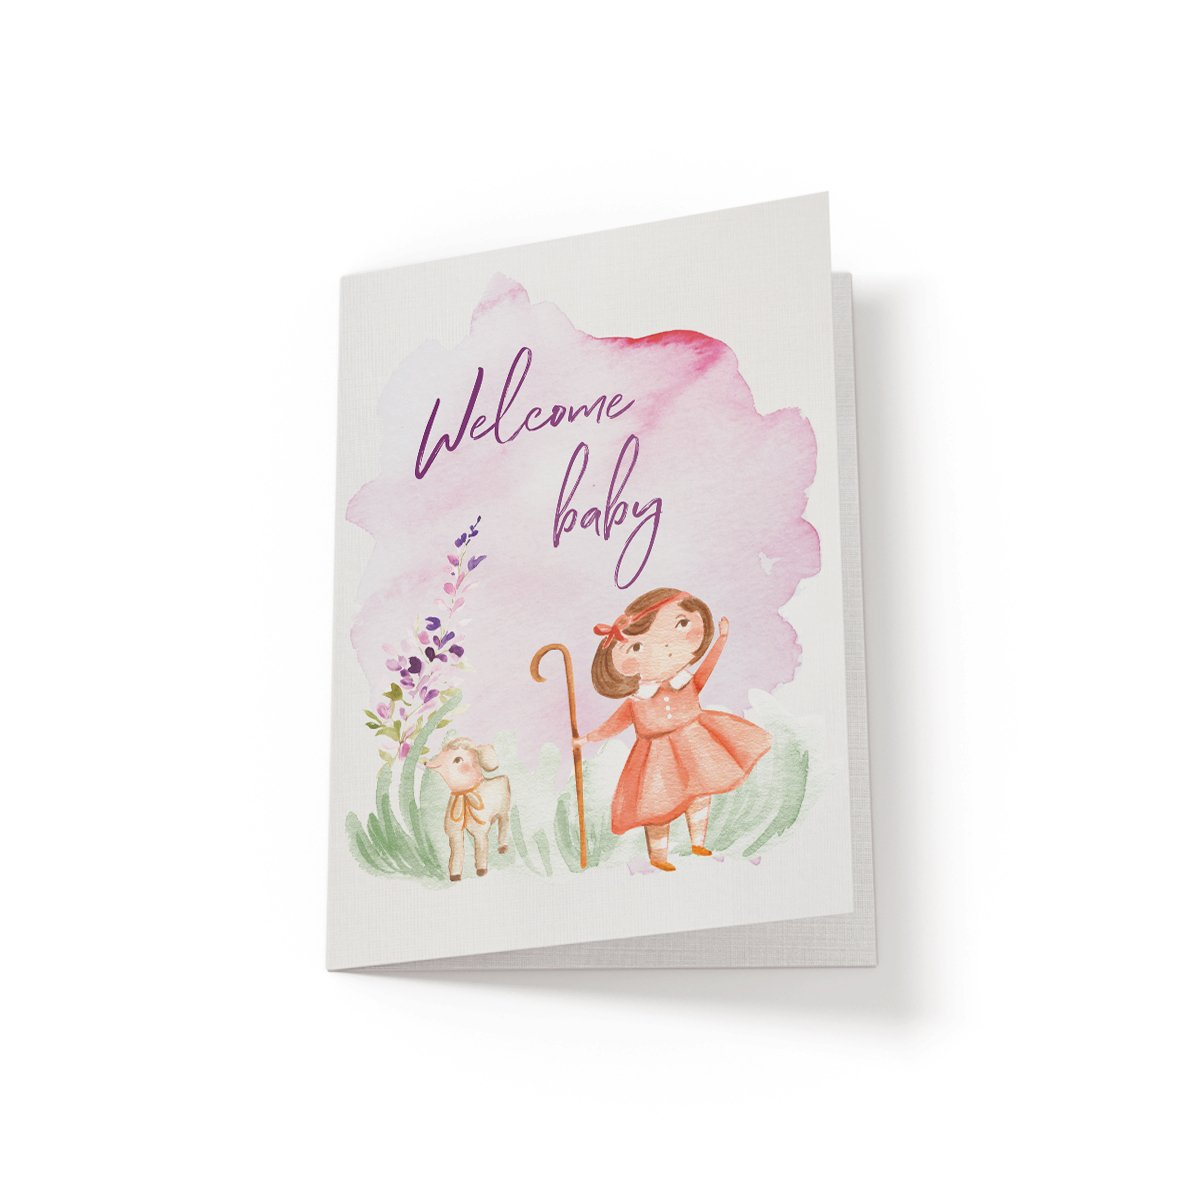 Welcome Baby - Greeting Card - Netties Expressions